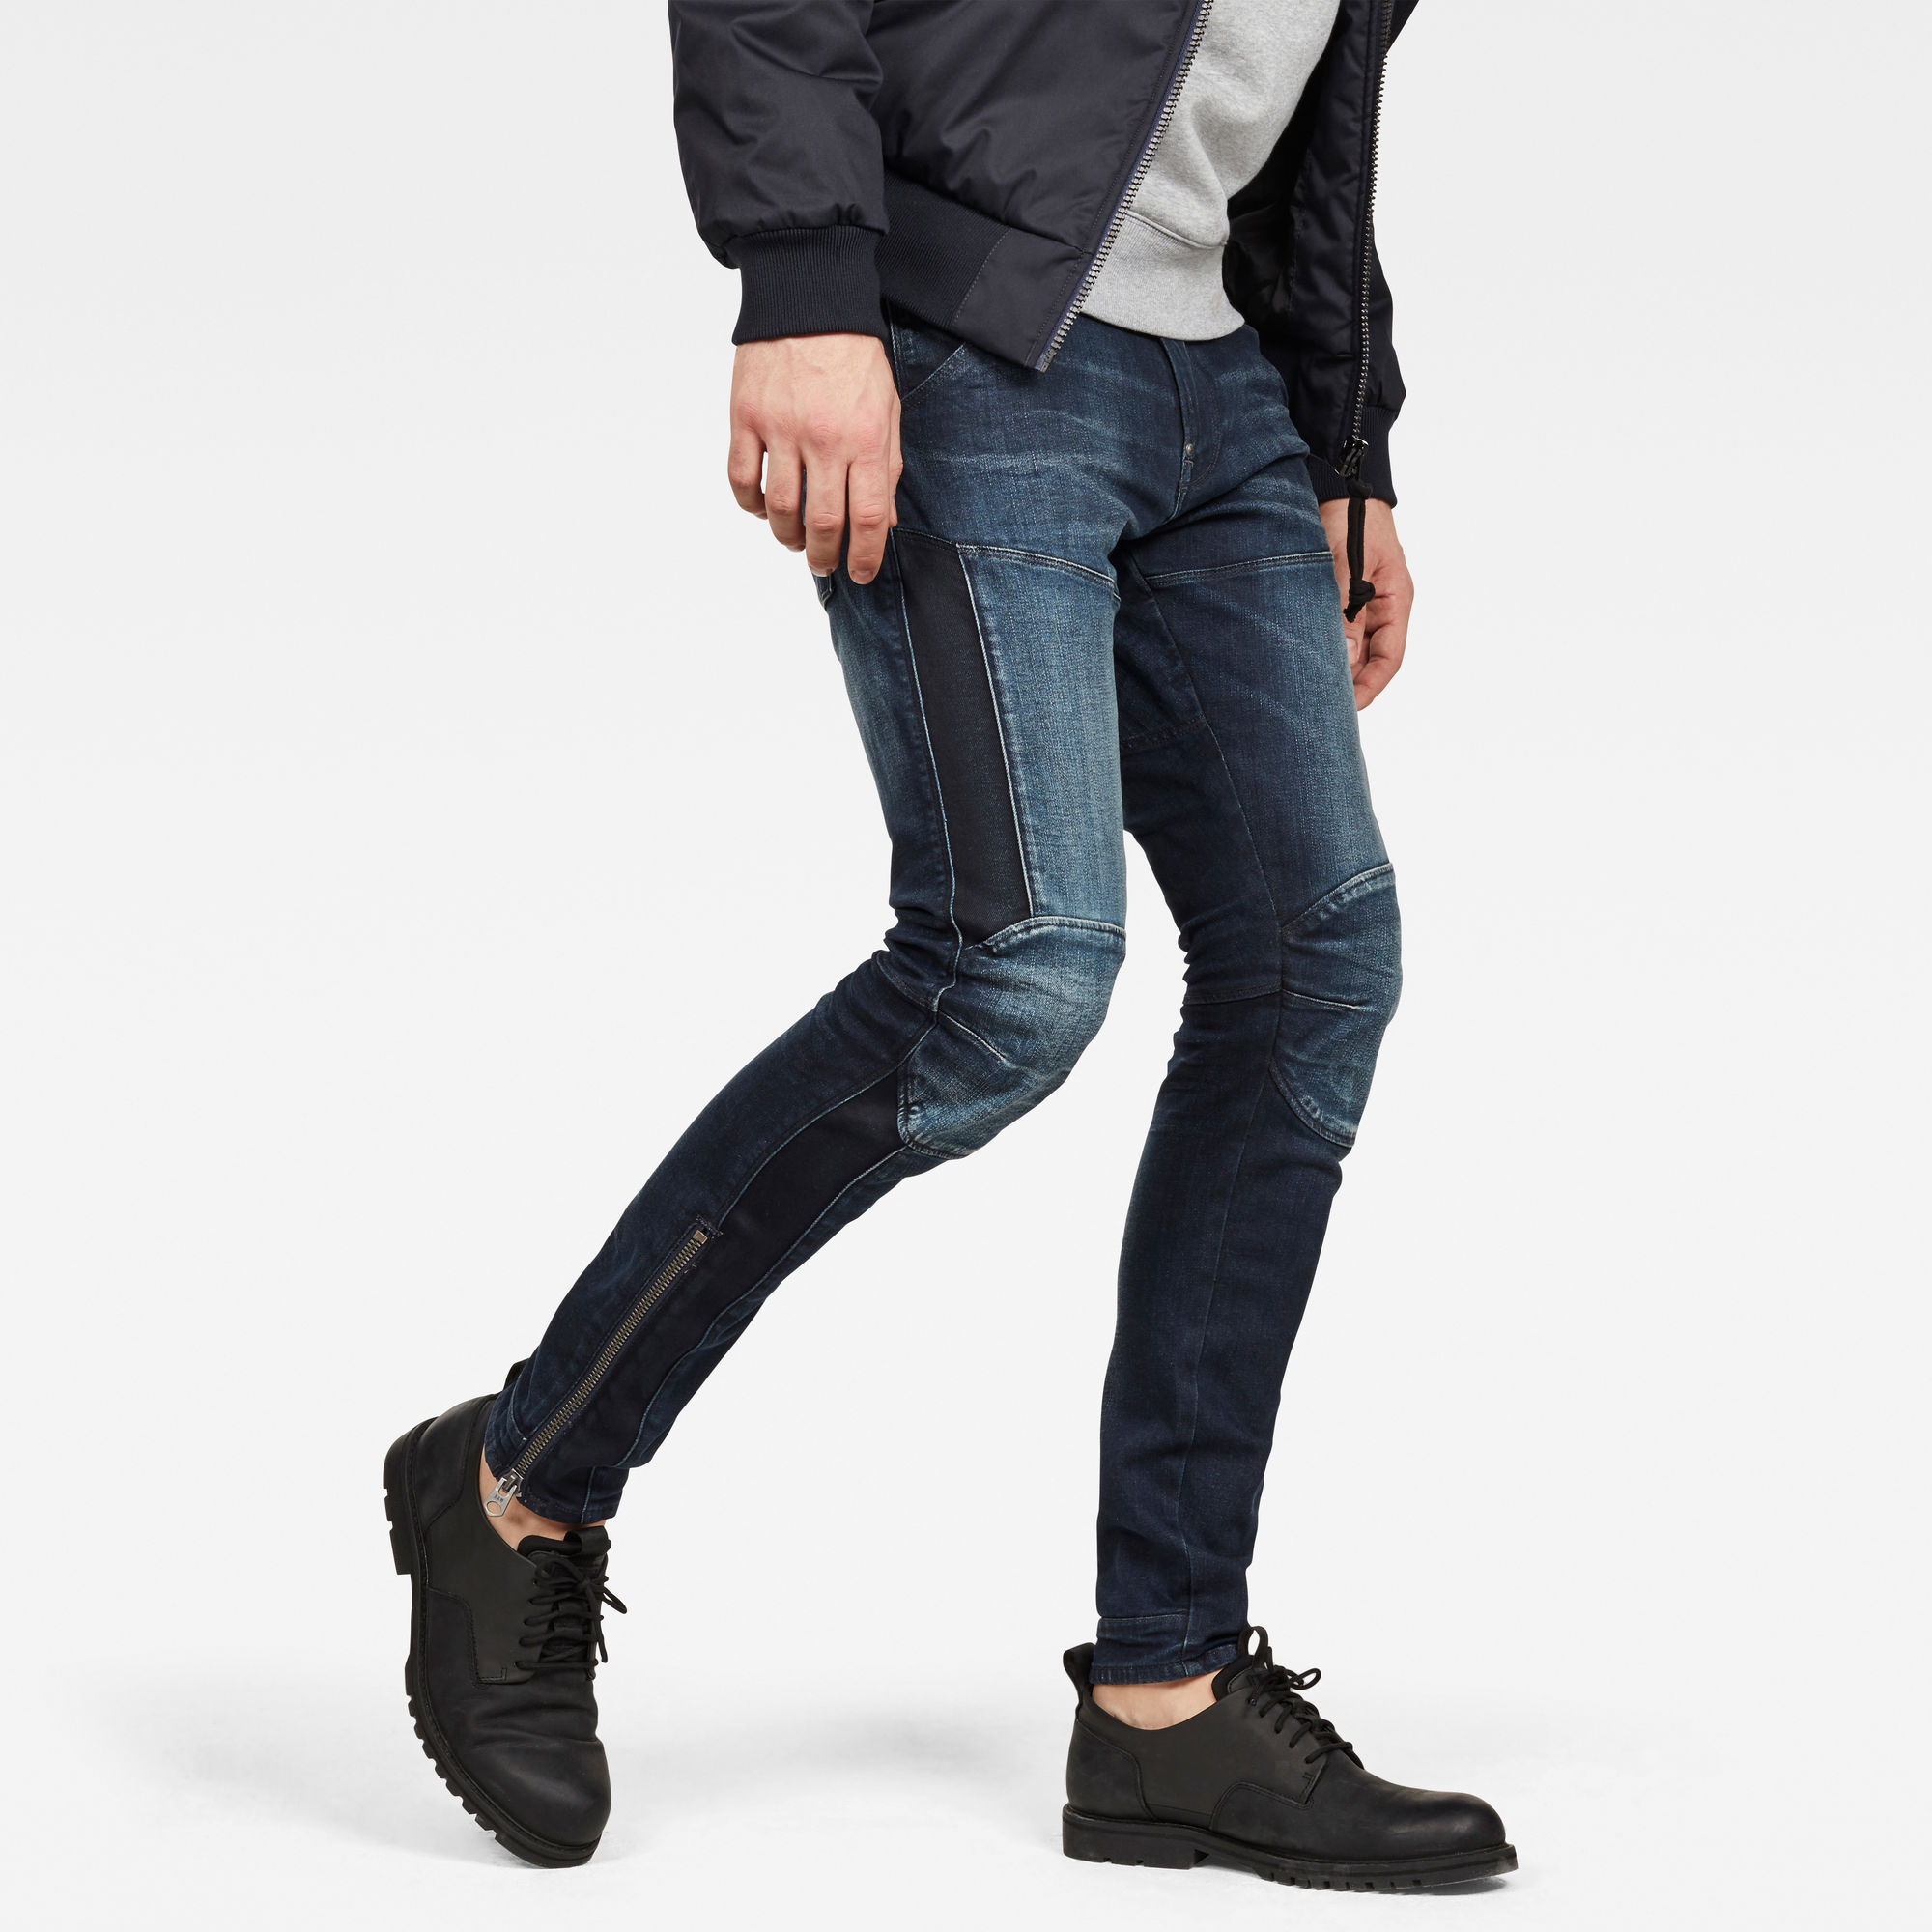 Image of G Star Raw 5620 G-Star Elwood 3D Ankle Zip Skinny Jeans